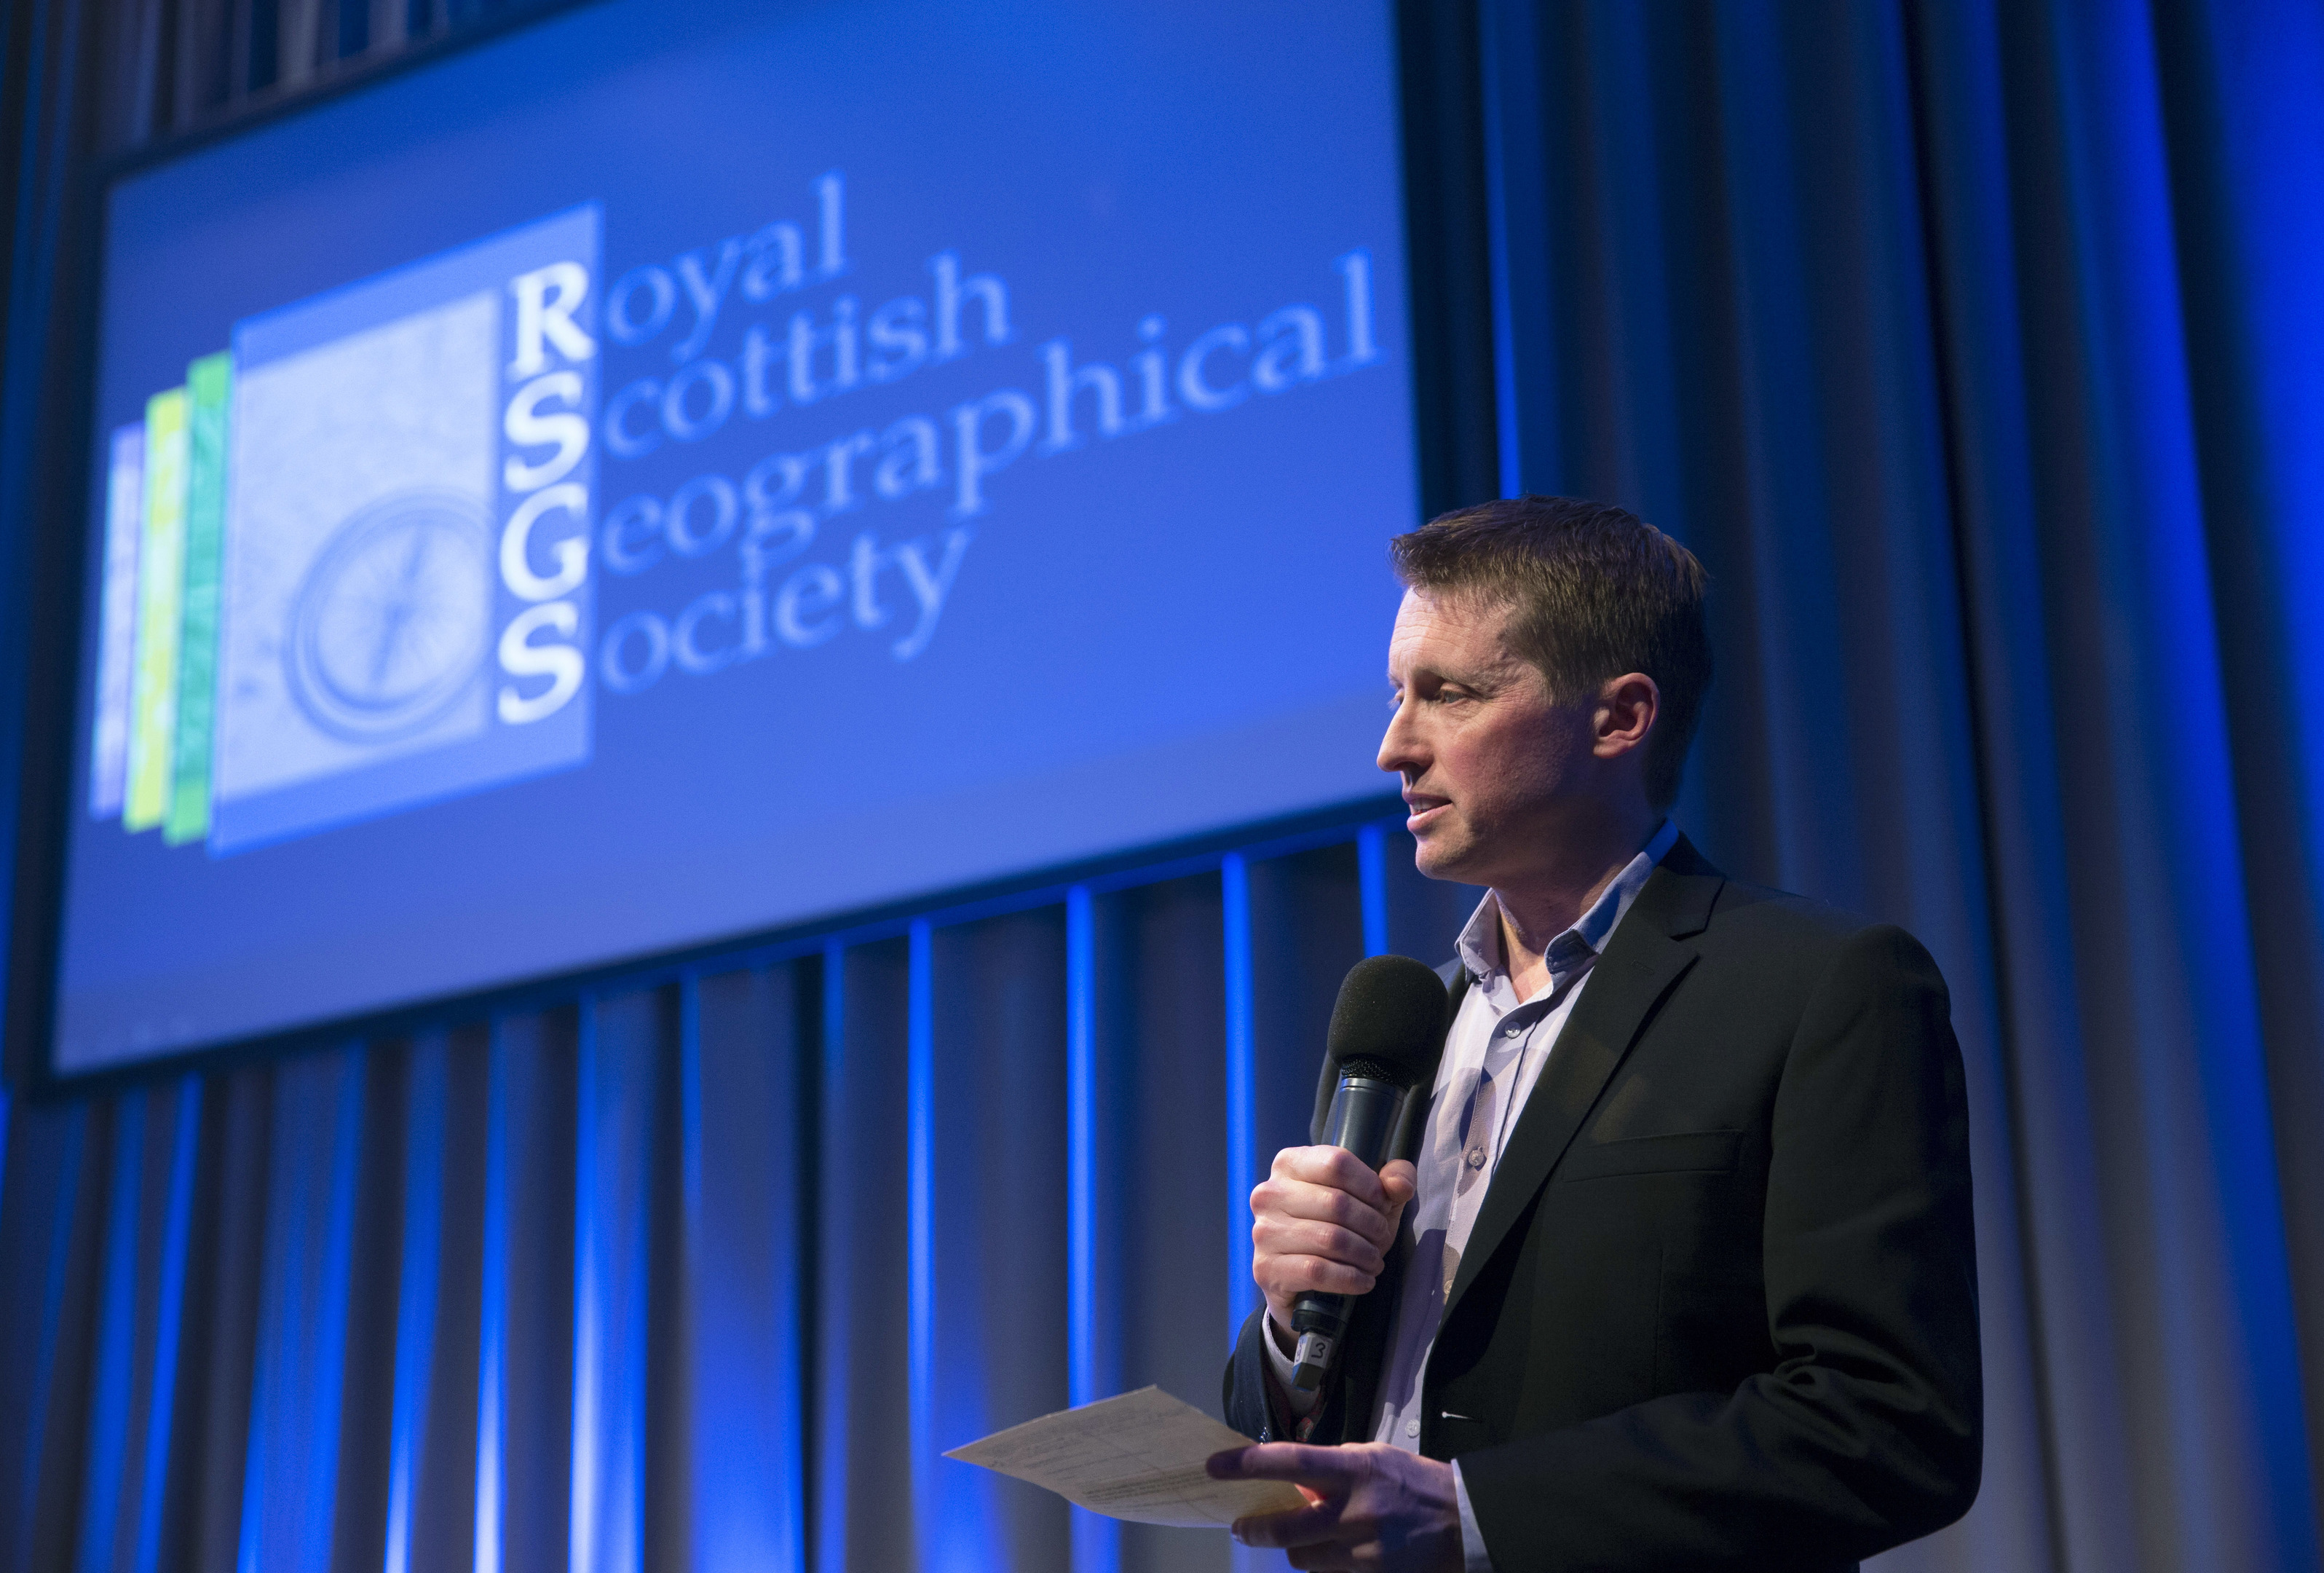 Mike Robinson, chief executive of the Royal Scottish Geographical Society.